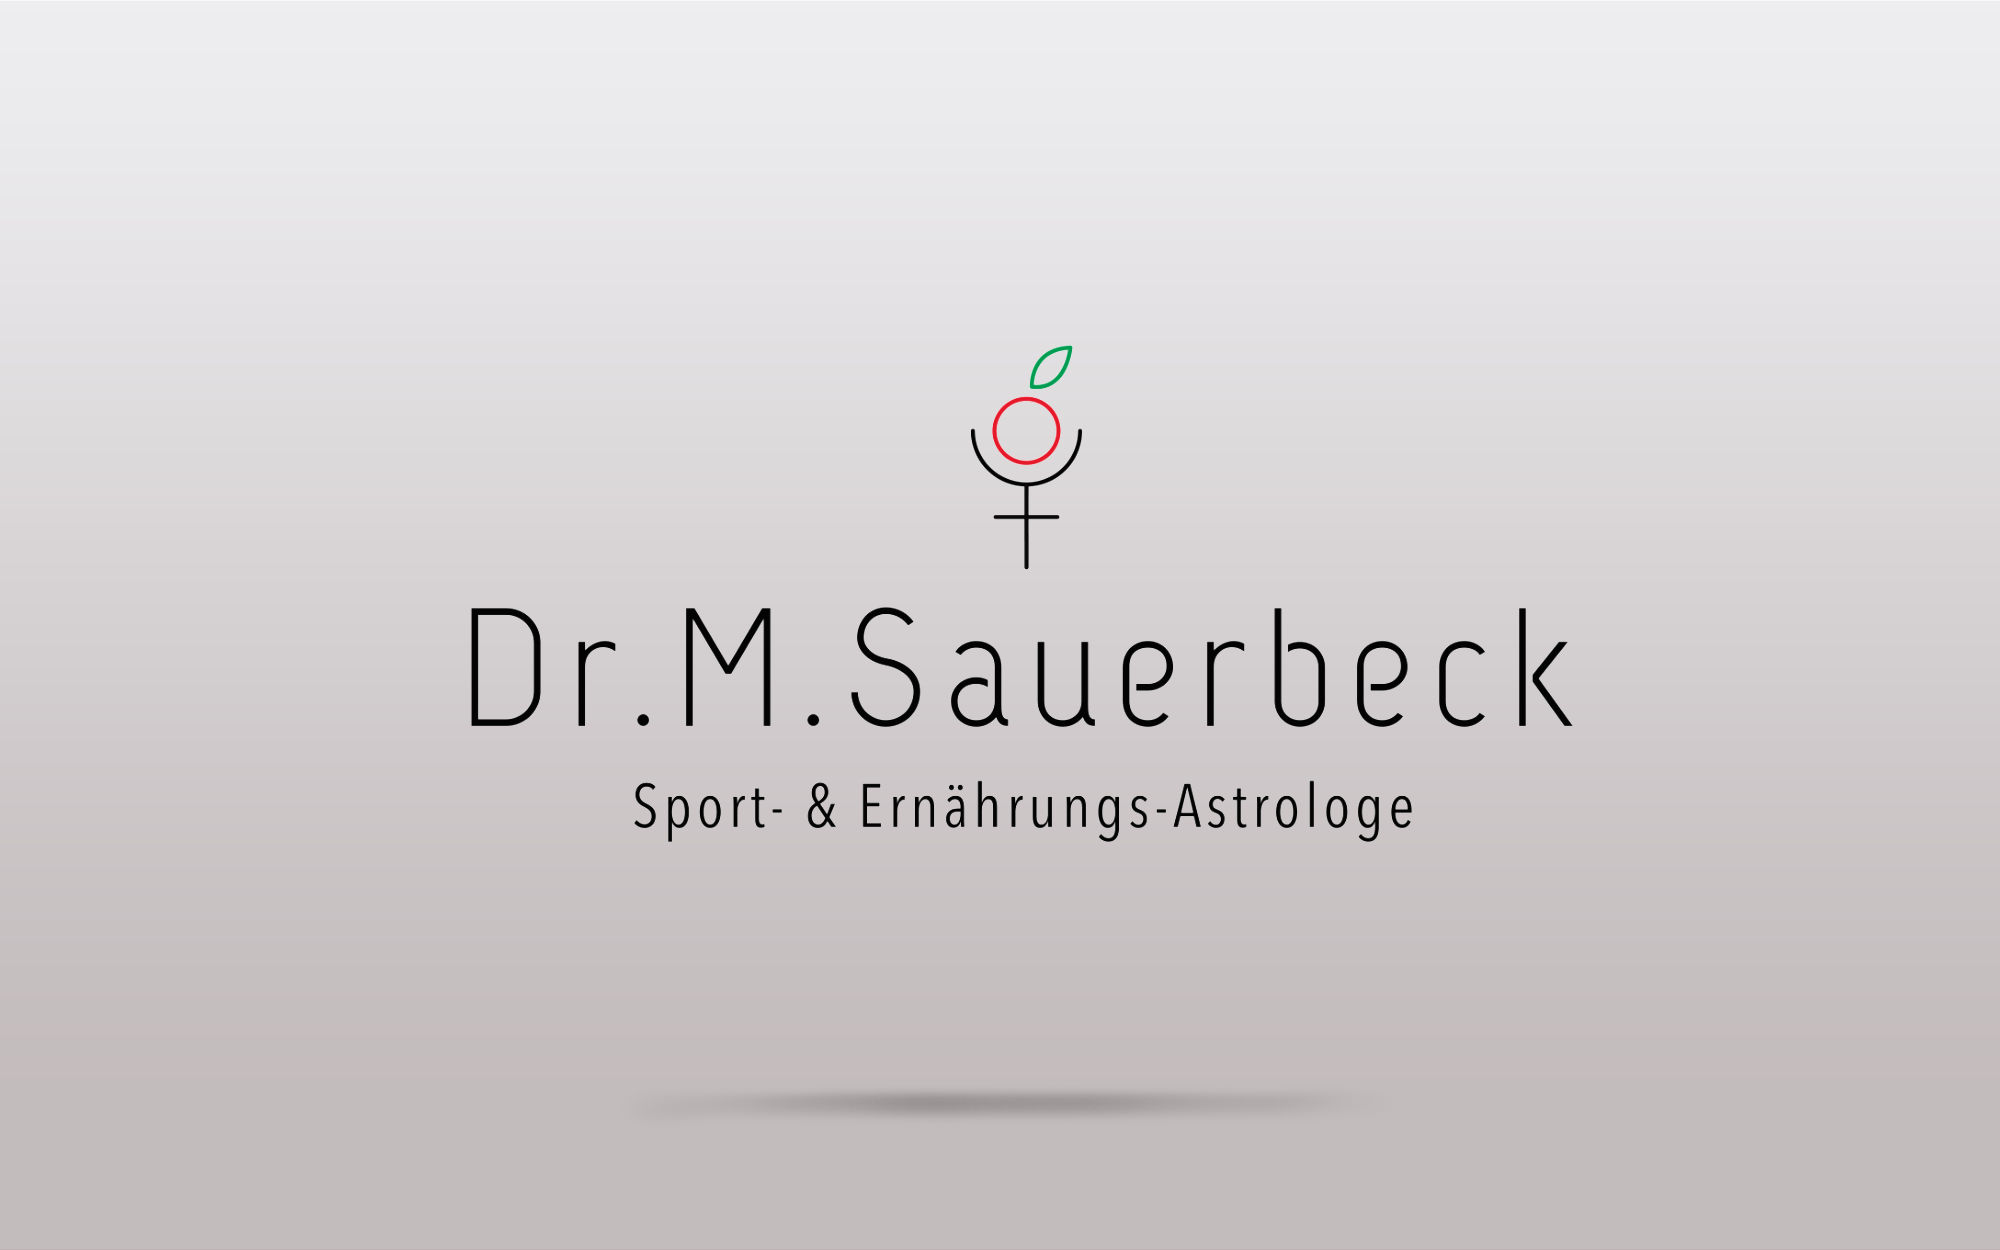 Corporate Design Logo Sauerbeck